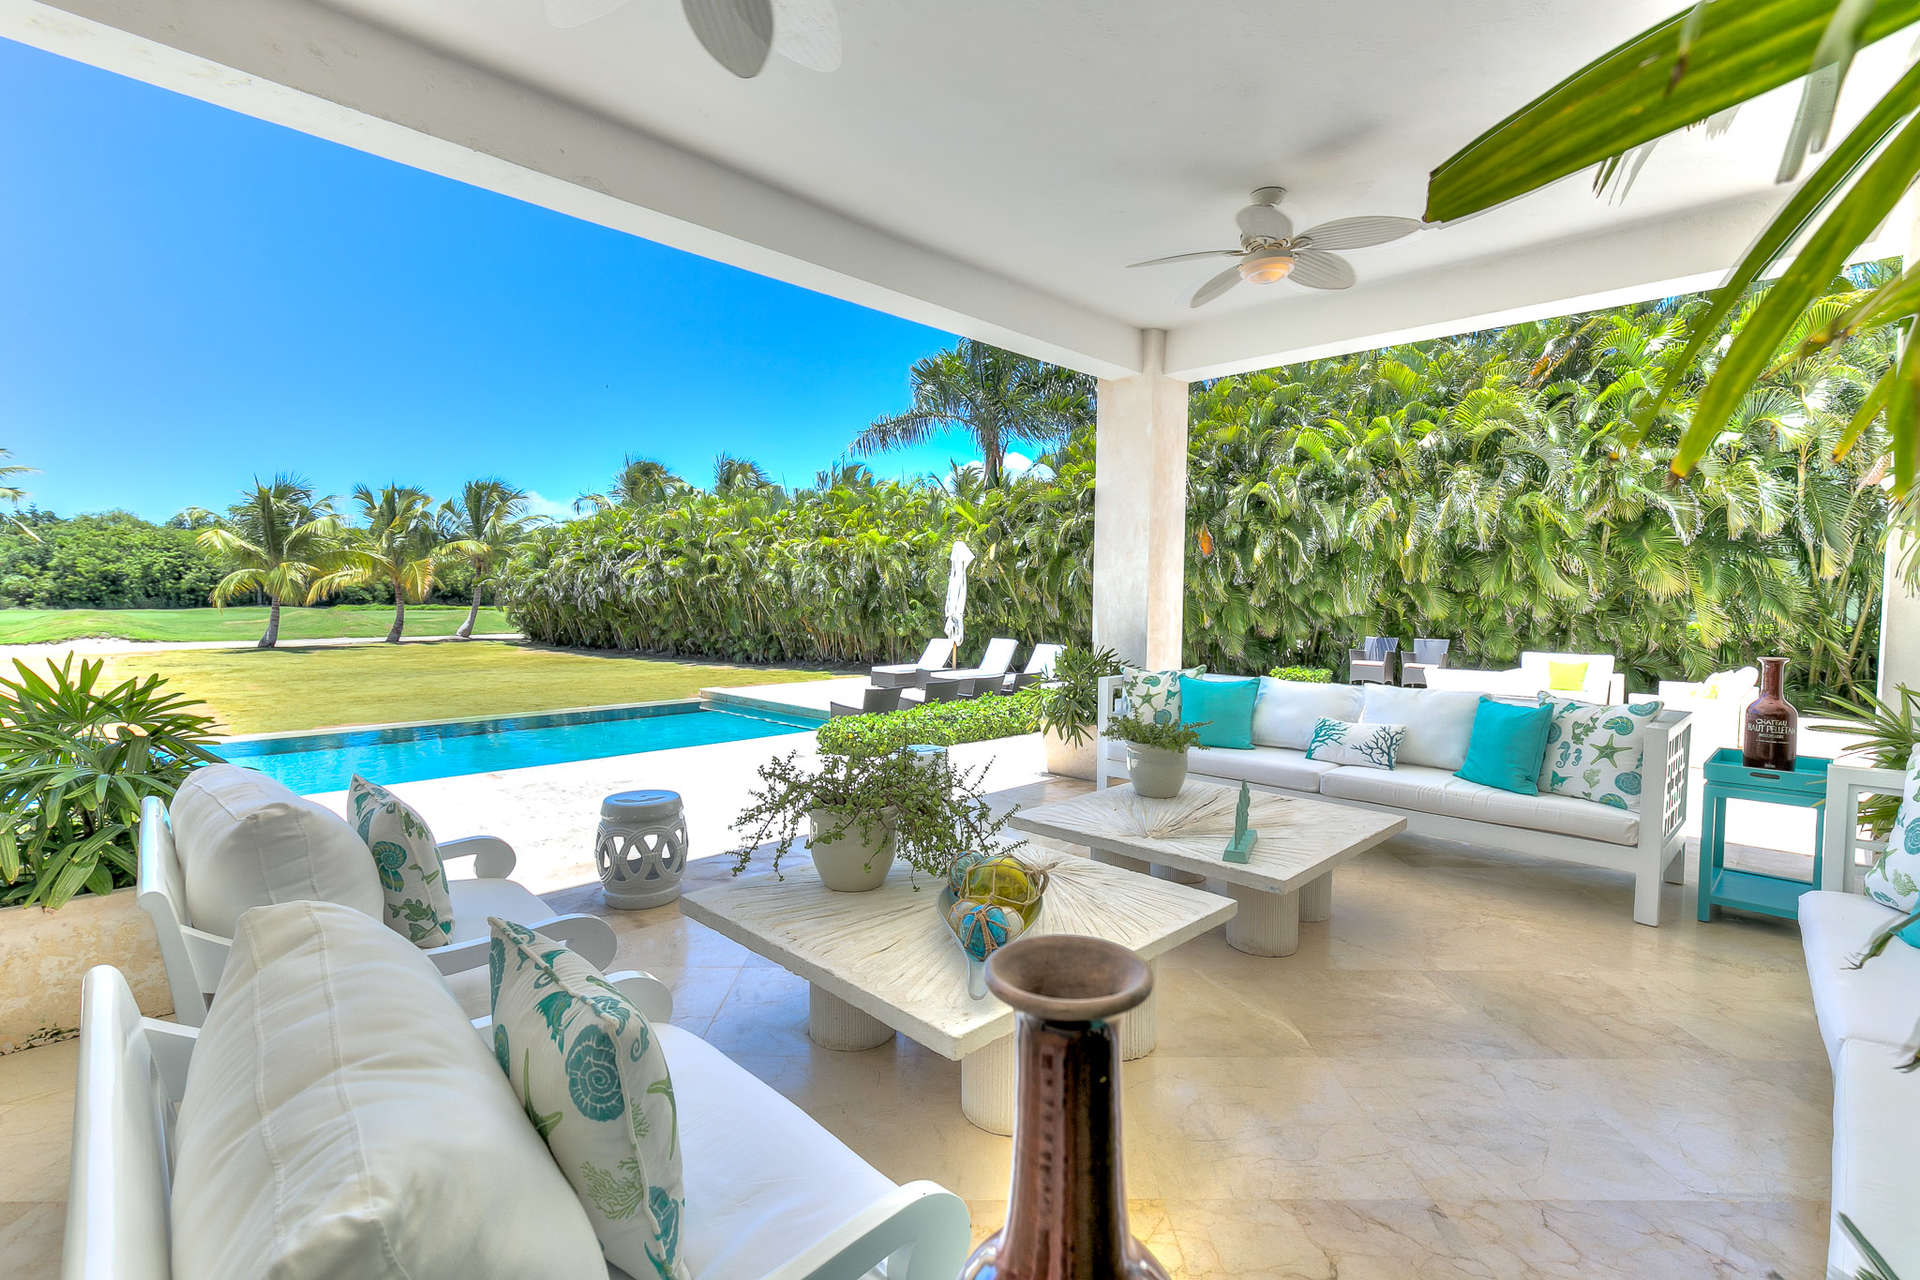 Luxury villa rentals caribbean - Dominican republic - Punta cana - Punta cana resort and club - Tortuga C19 - Image 1/24